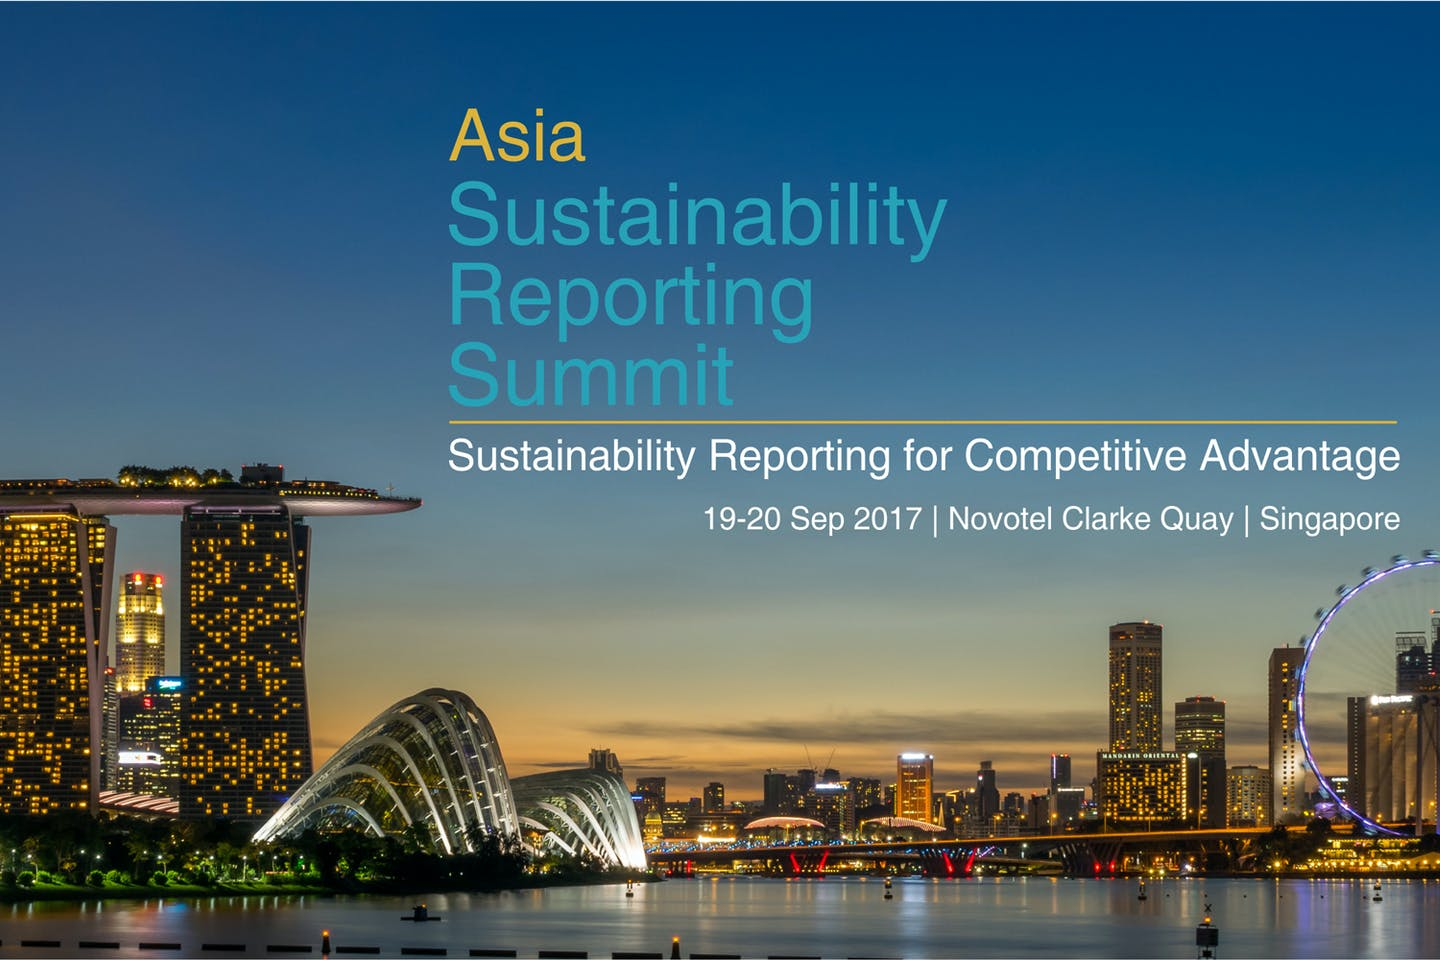 More than 50 top speakers to address Asia's first sustainability reporting conference